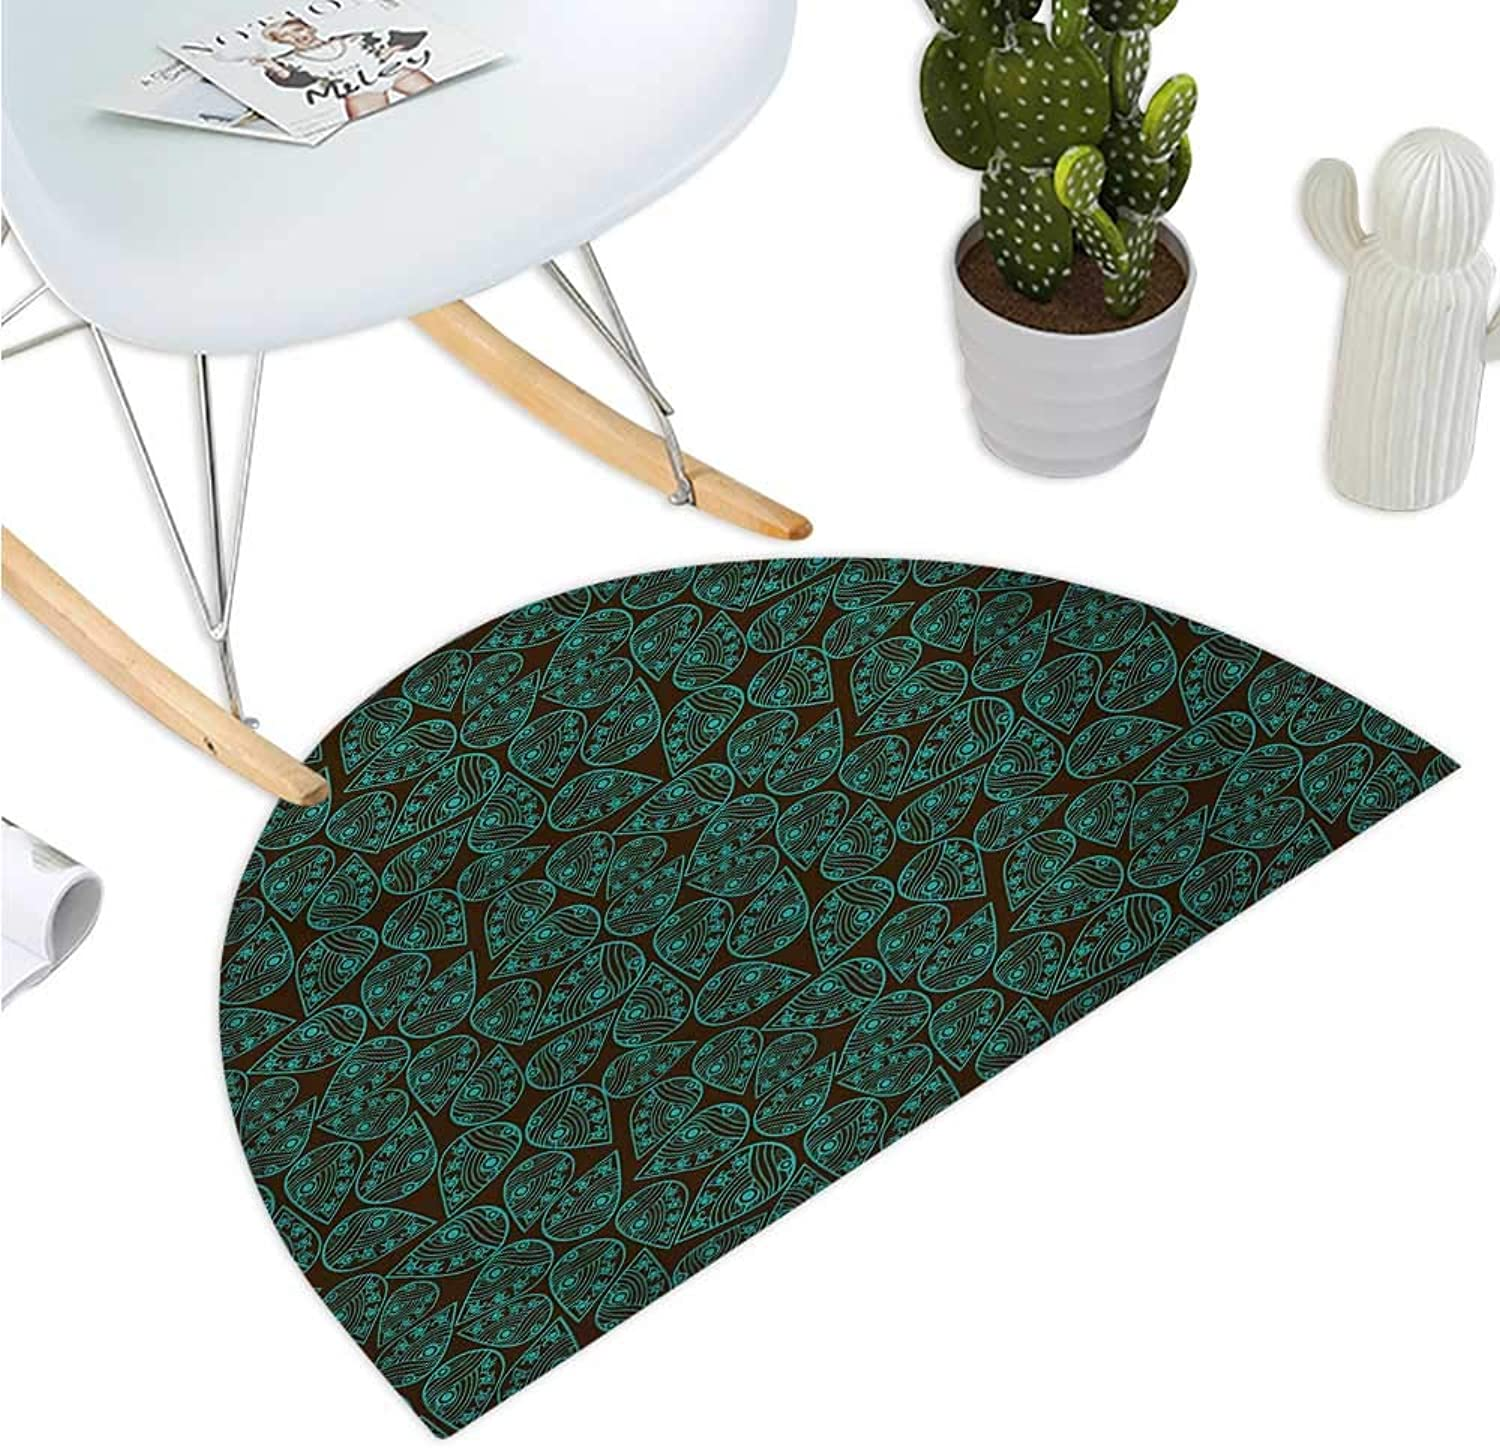 Ethnic Half Round Door mats Eastern Asian Style Leaf Pattern with Traditional Folk Feng Shui Concept Bathroom Mat H 39.3  xD 59  Seal Brown Turquoise